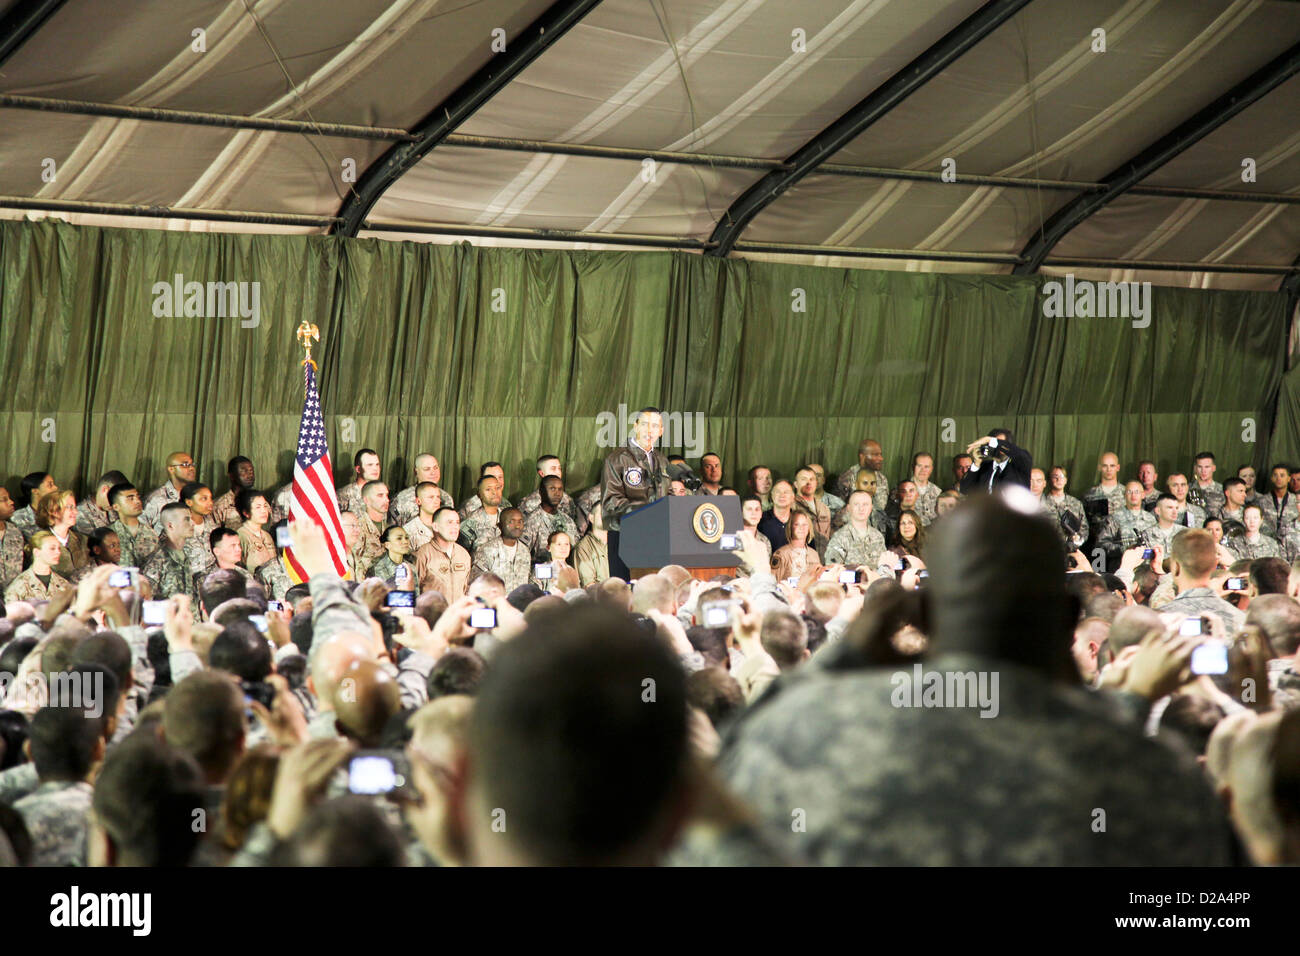 President United States Barack Obama Center Delivers Speech Crowd U.S Soldiers On Stage Inside Hanger Bagram Airfield - Stock Image